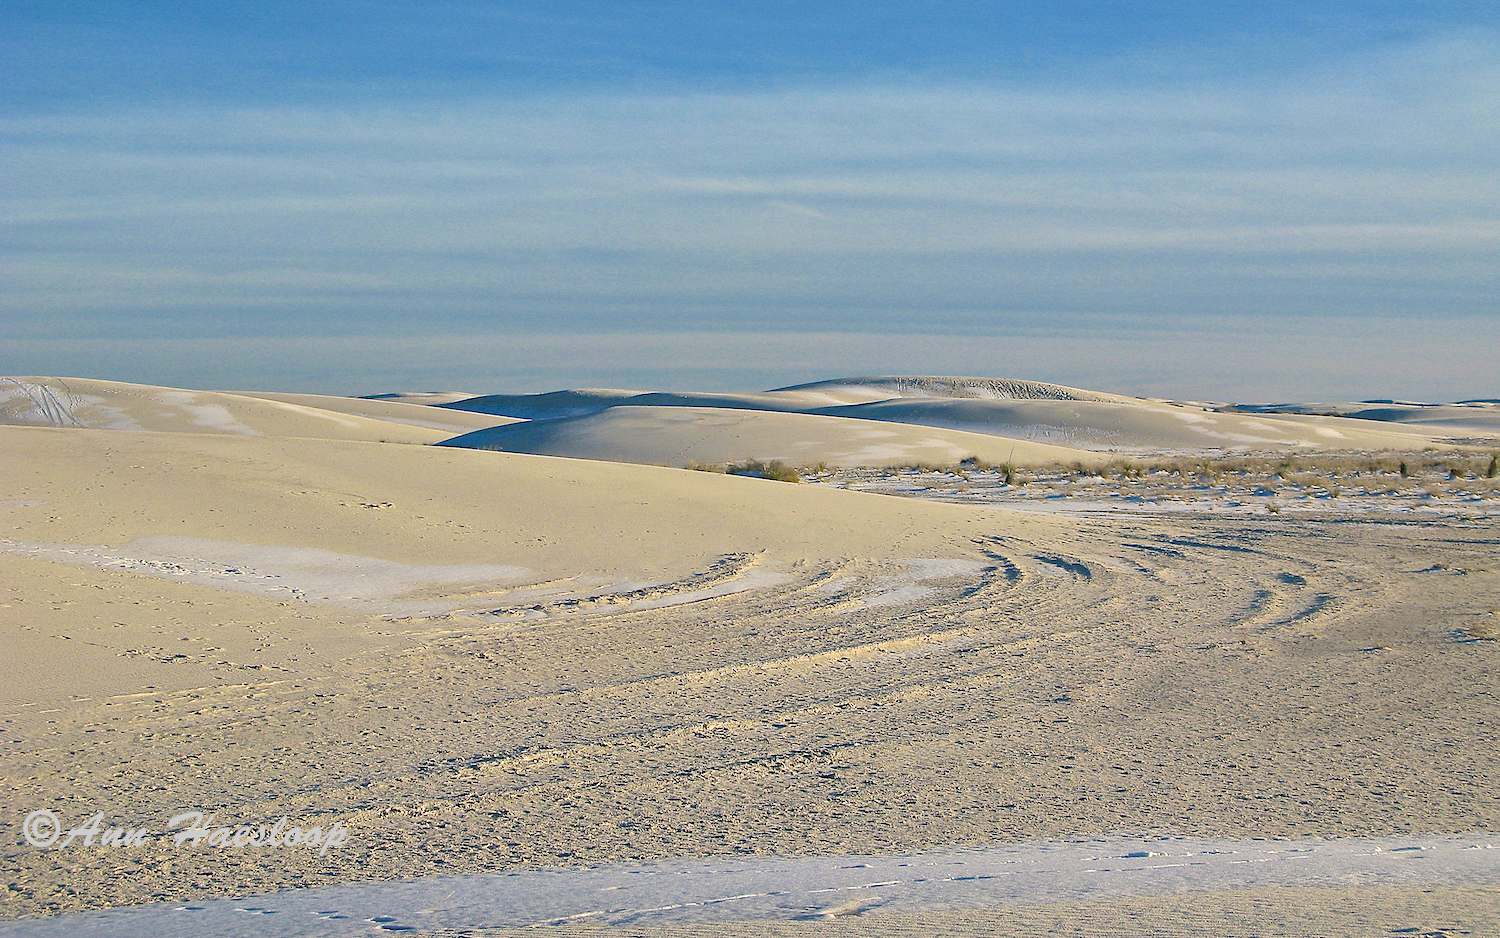 To me, these look more like mounds of sand rather than dunes. Ripple patterns left by melting snow demonstrate that the power of moving water can be just as interesting as ripples caused by moving air.